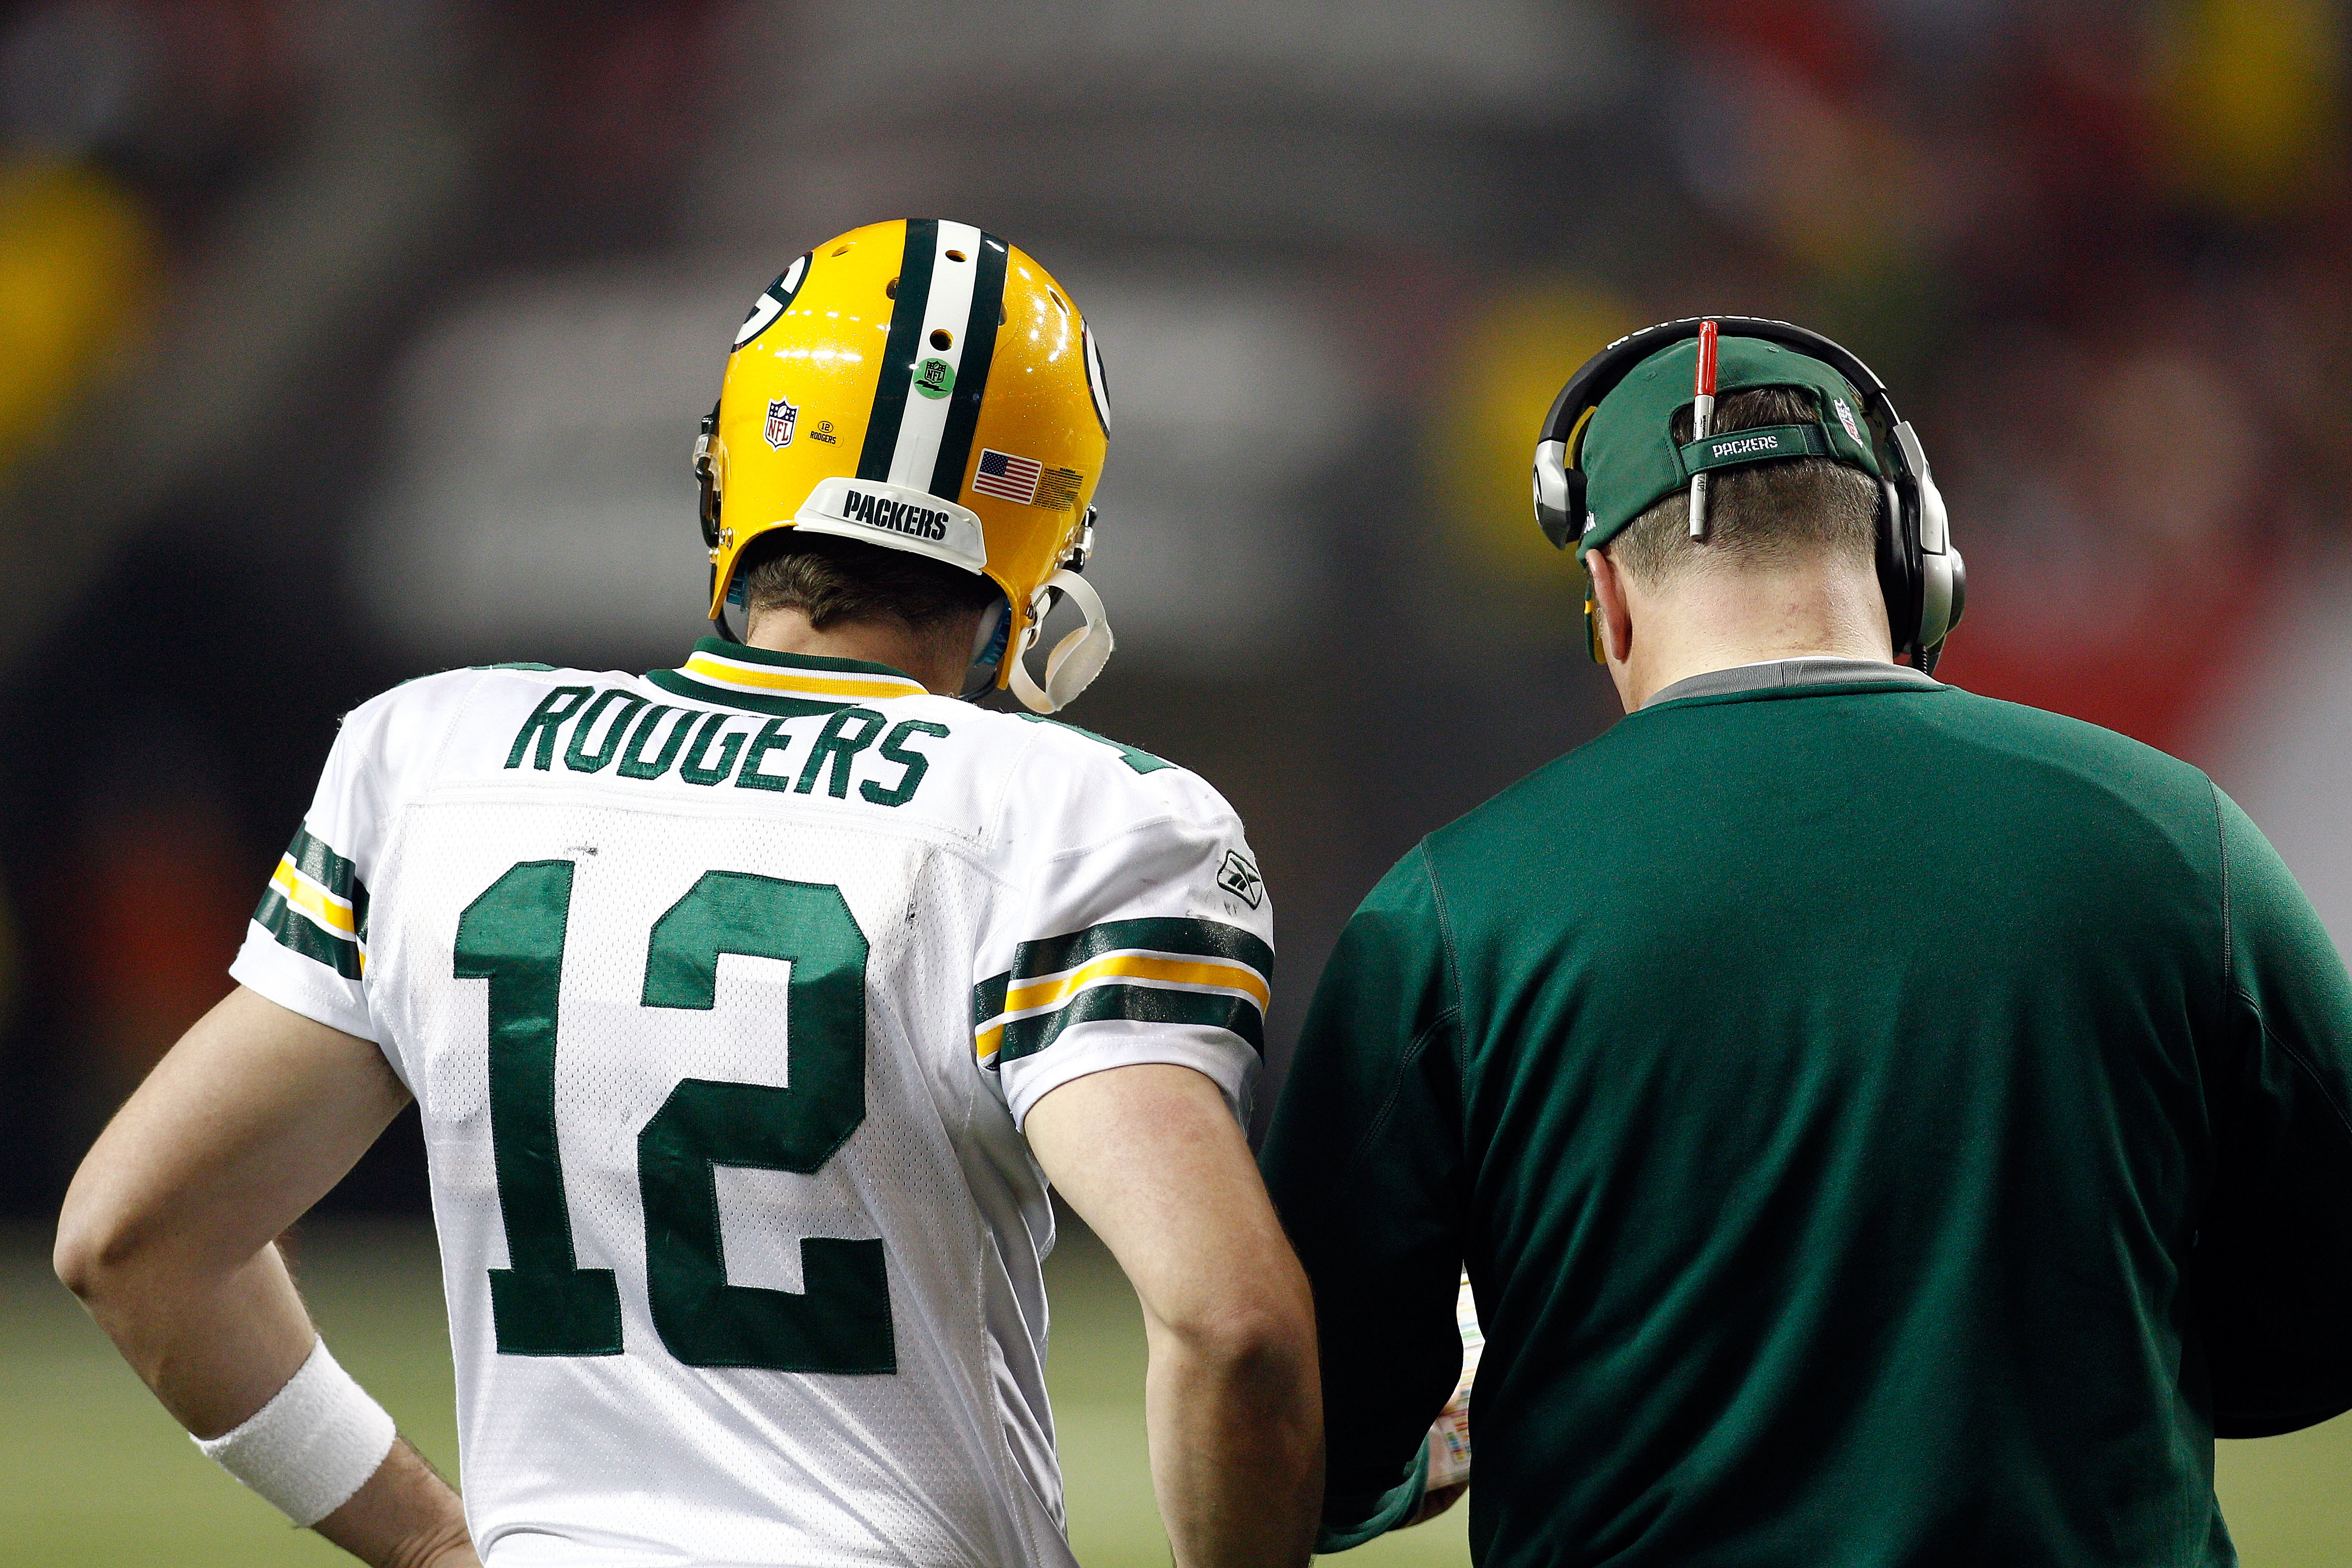 ATLANTA, GA - JANUARY 15:  (L-R) Quarterback Aaron Rodgers #12 and head coach Mike McCarthy of the Green Bay Packers talk on the sideline against the Atlanta Falcons during their 2011 NFC divisional playoff game at Georgia Dome on January 15, 2011 in Atla